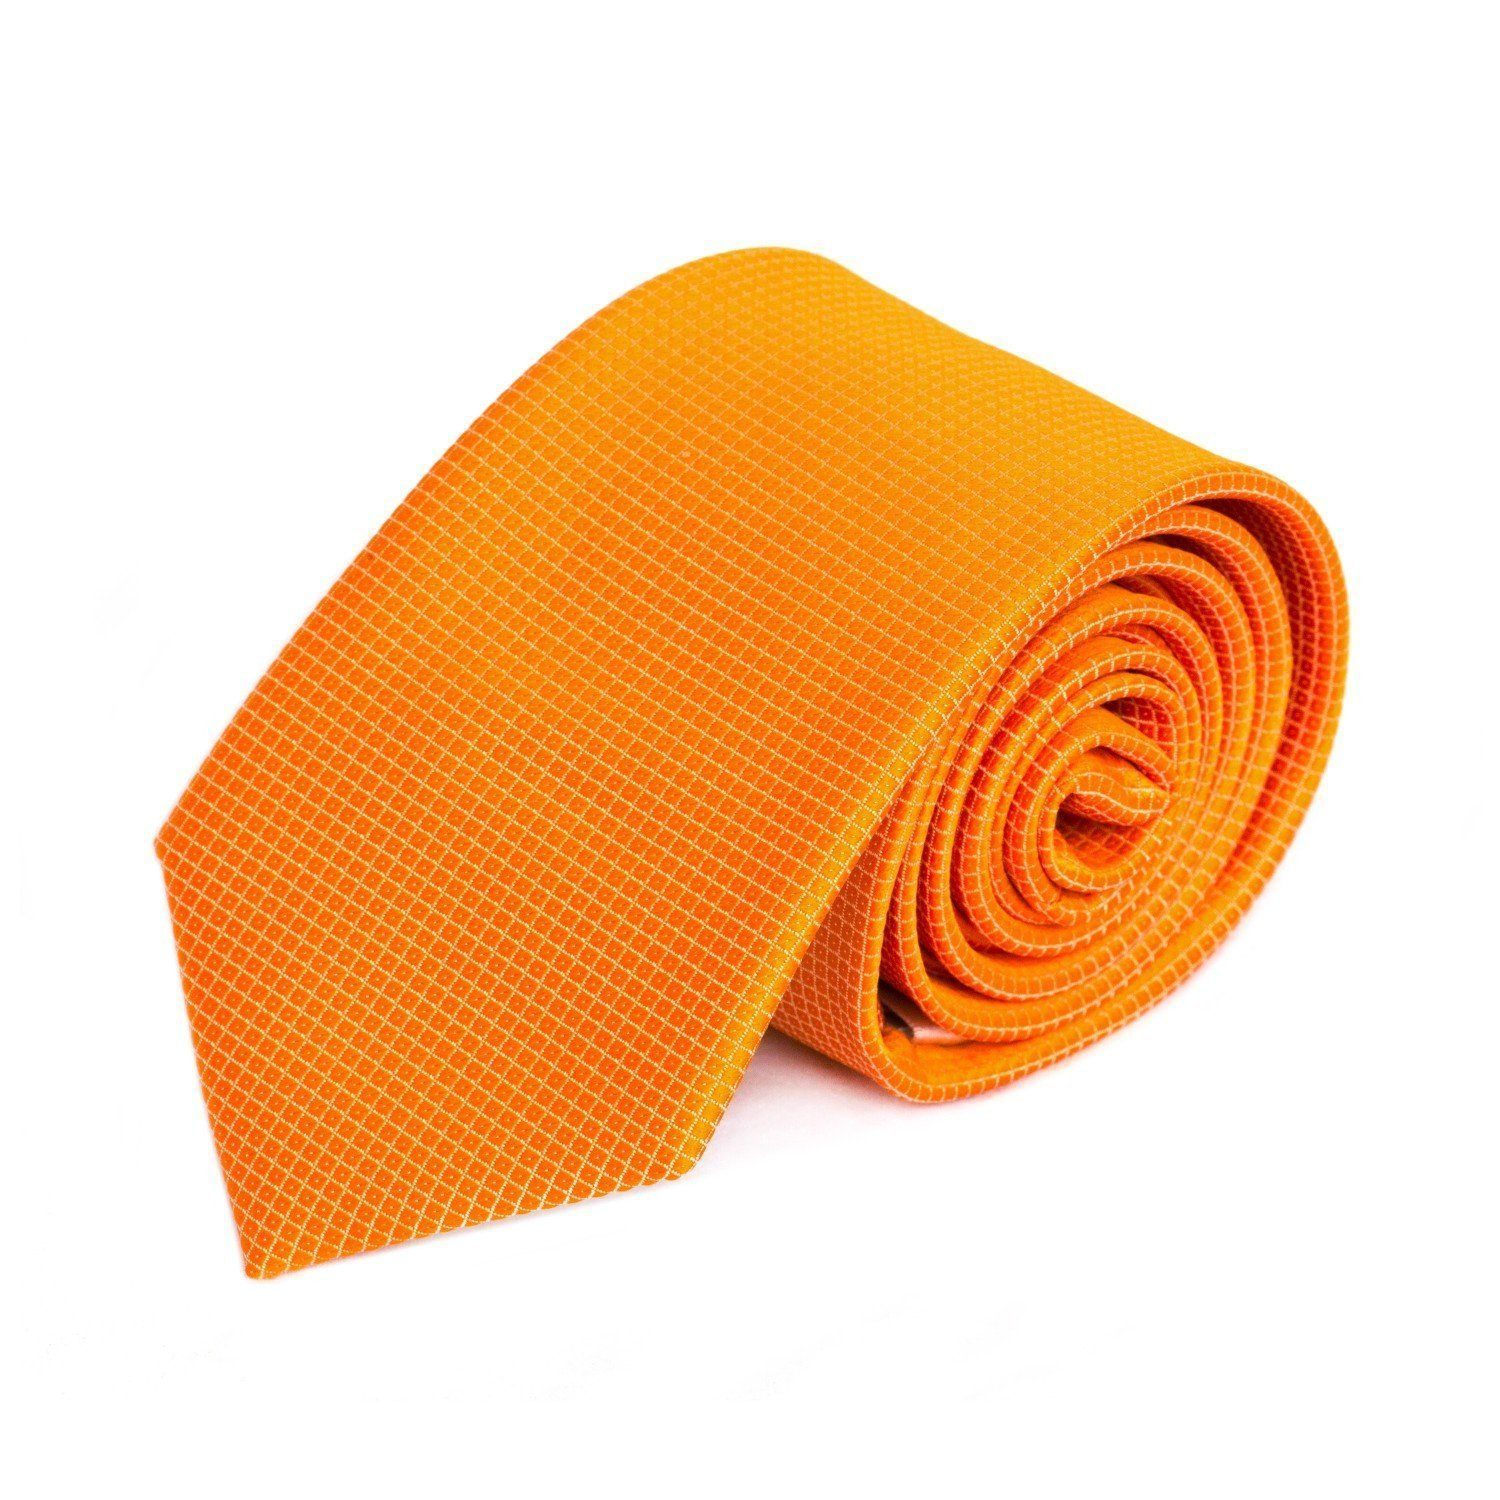 Orange MF Tie Ties Cuffed.com.au